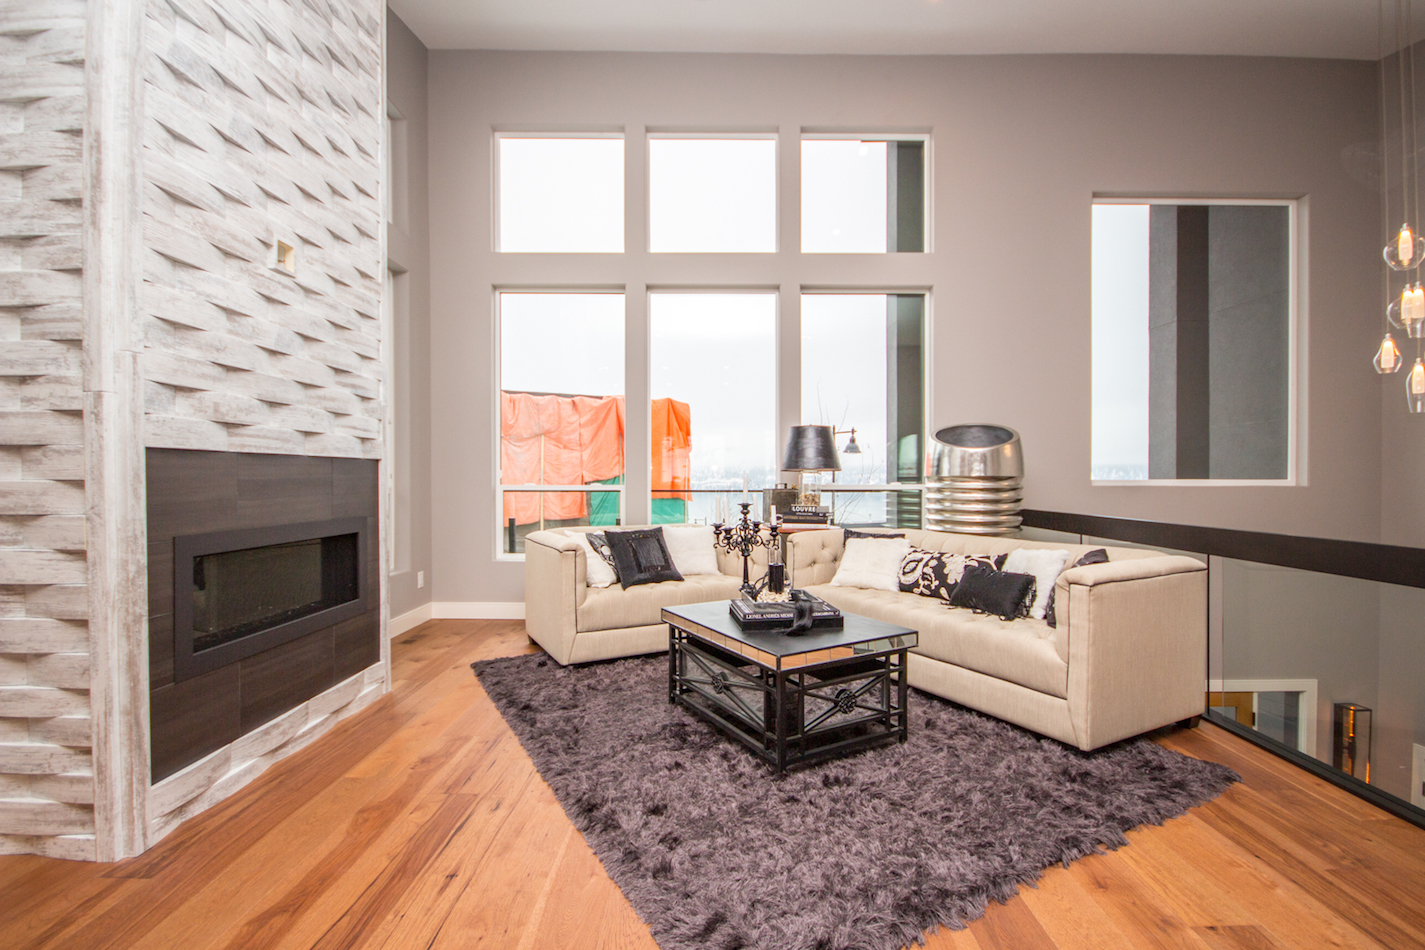 south-etobicoke-renovation